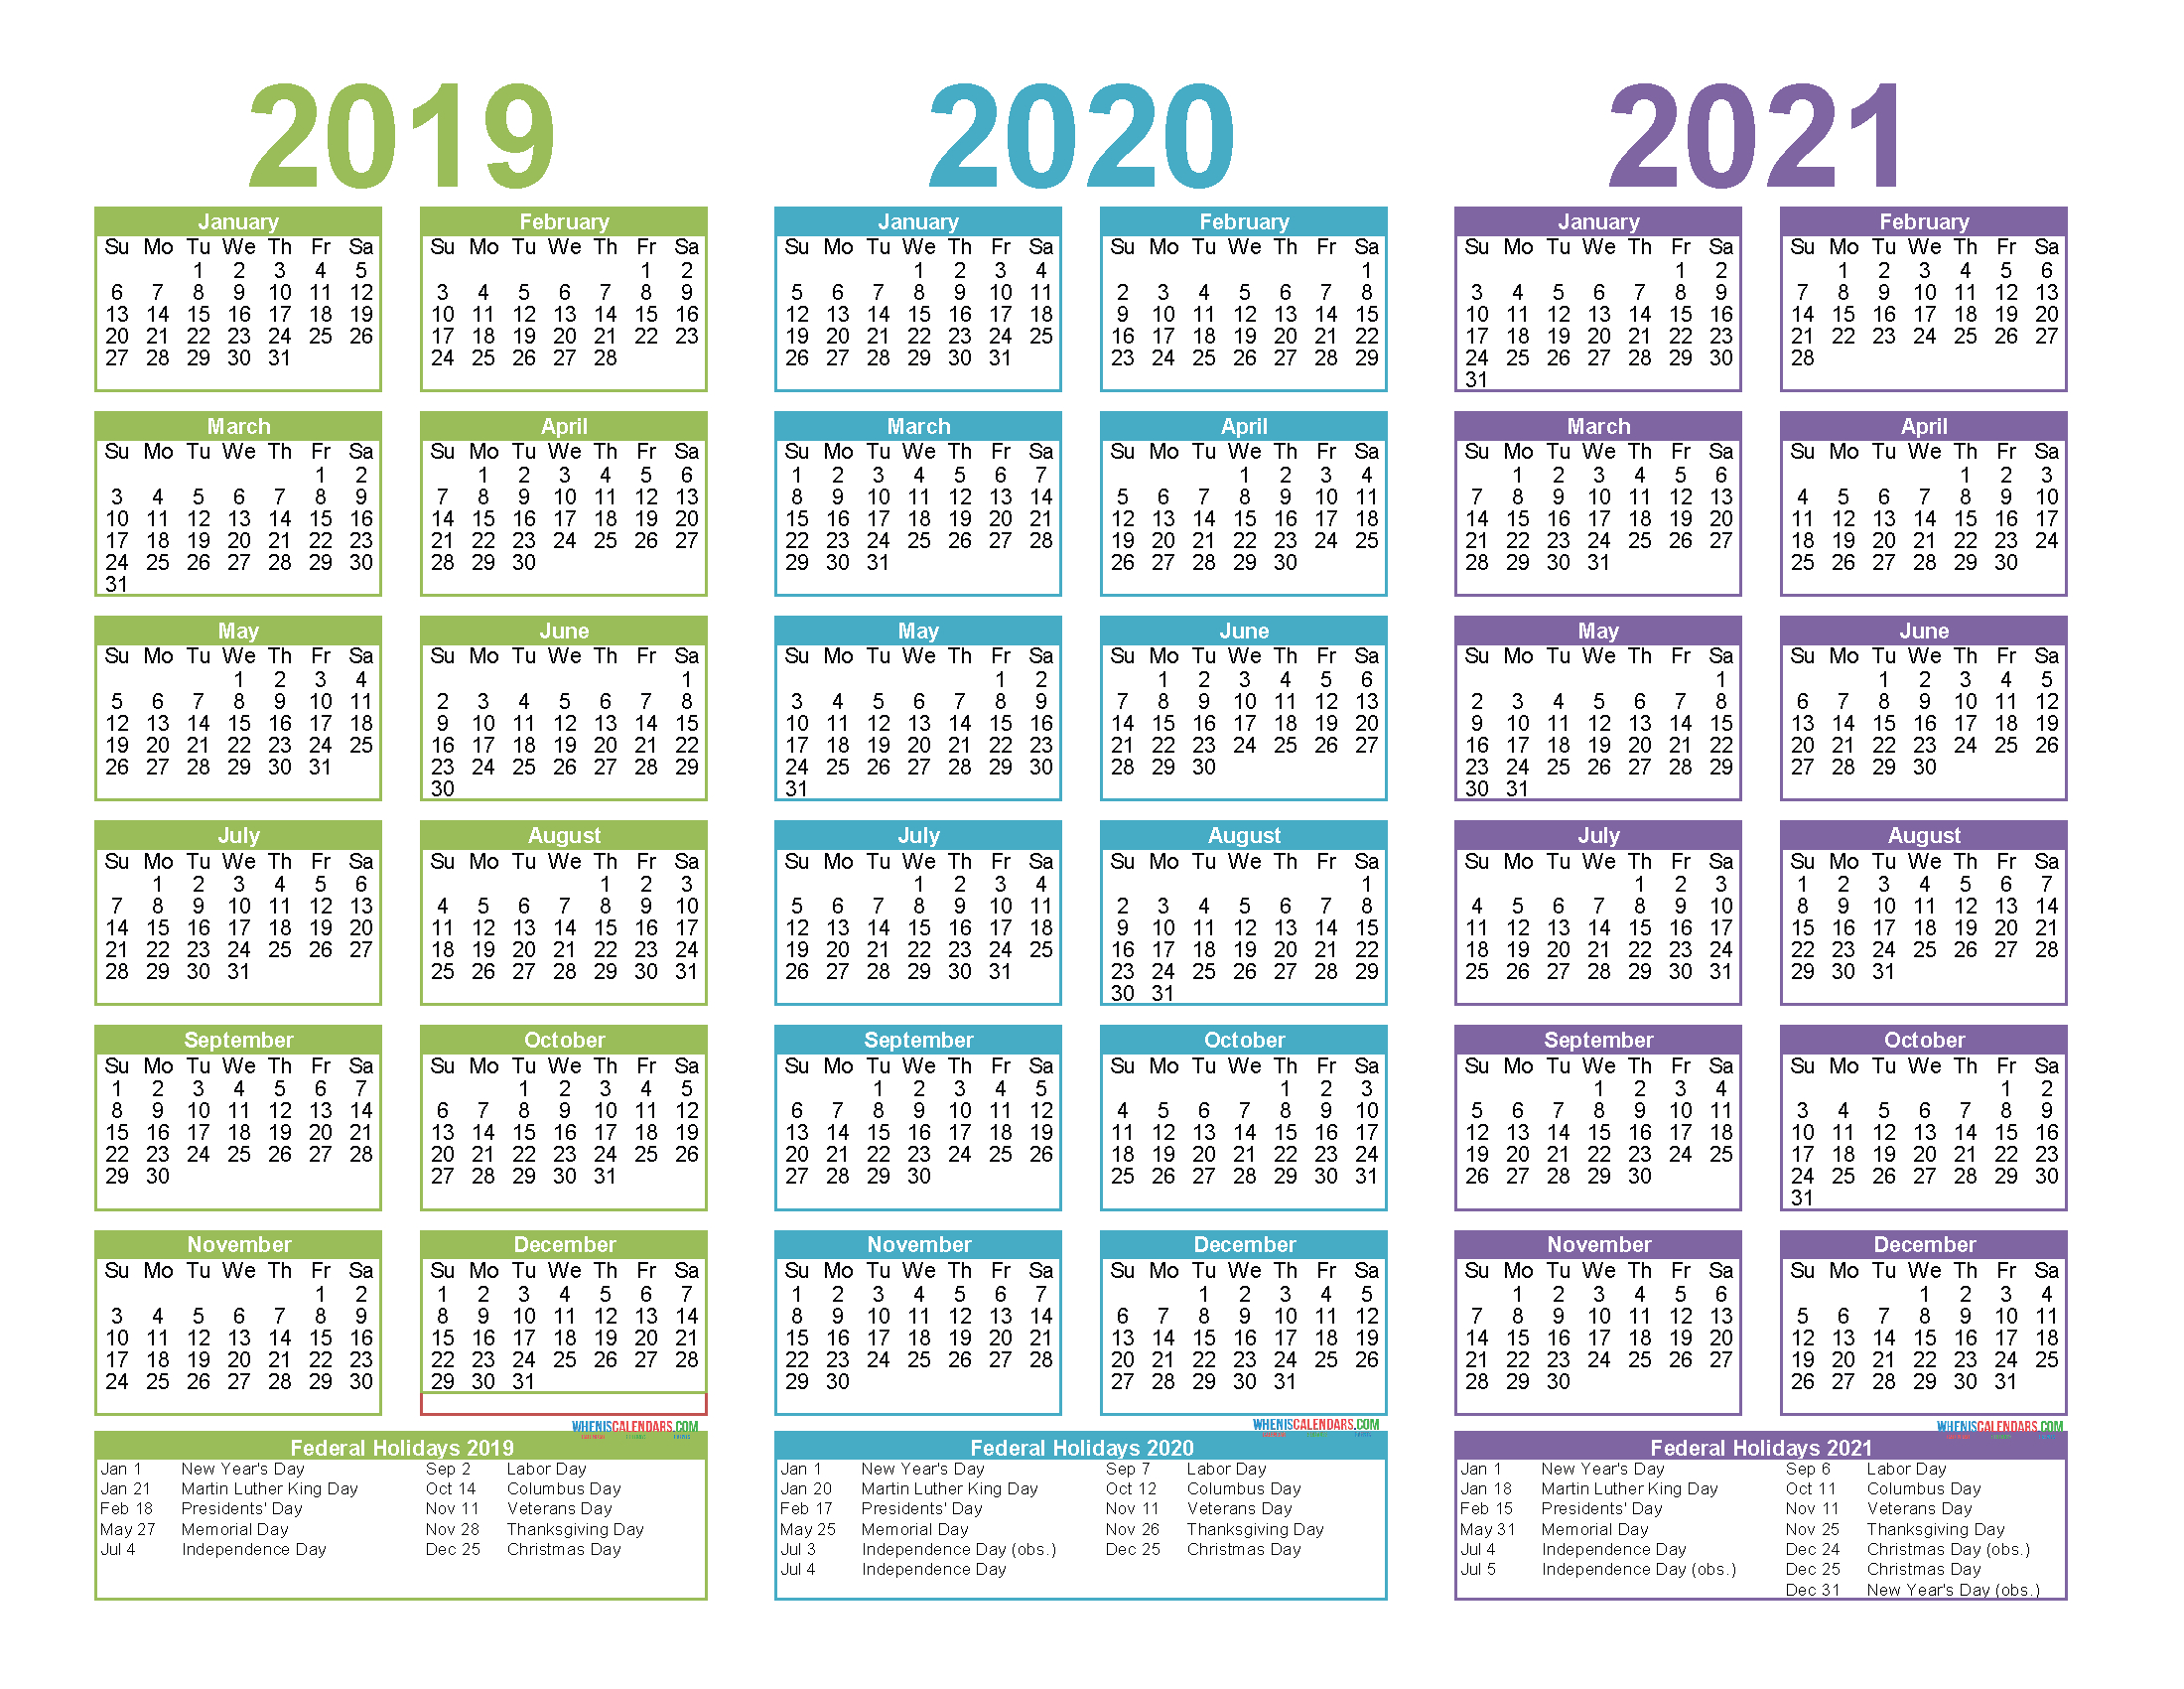 2019 To 2021 3 Year Calendar Printable Free Pdf, Word, Image in 3 Year Calendar 2020 To 2021 Excel